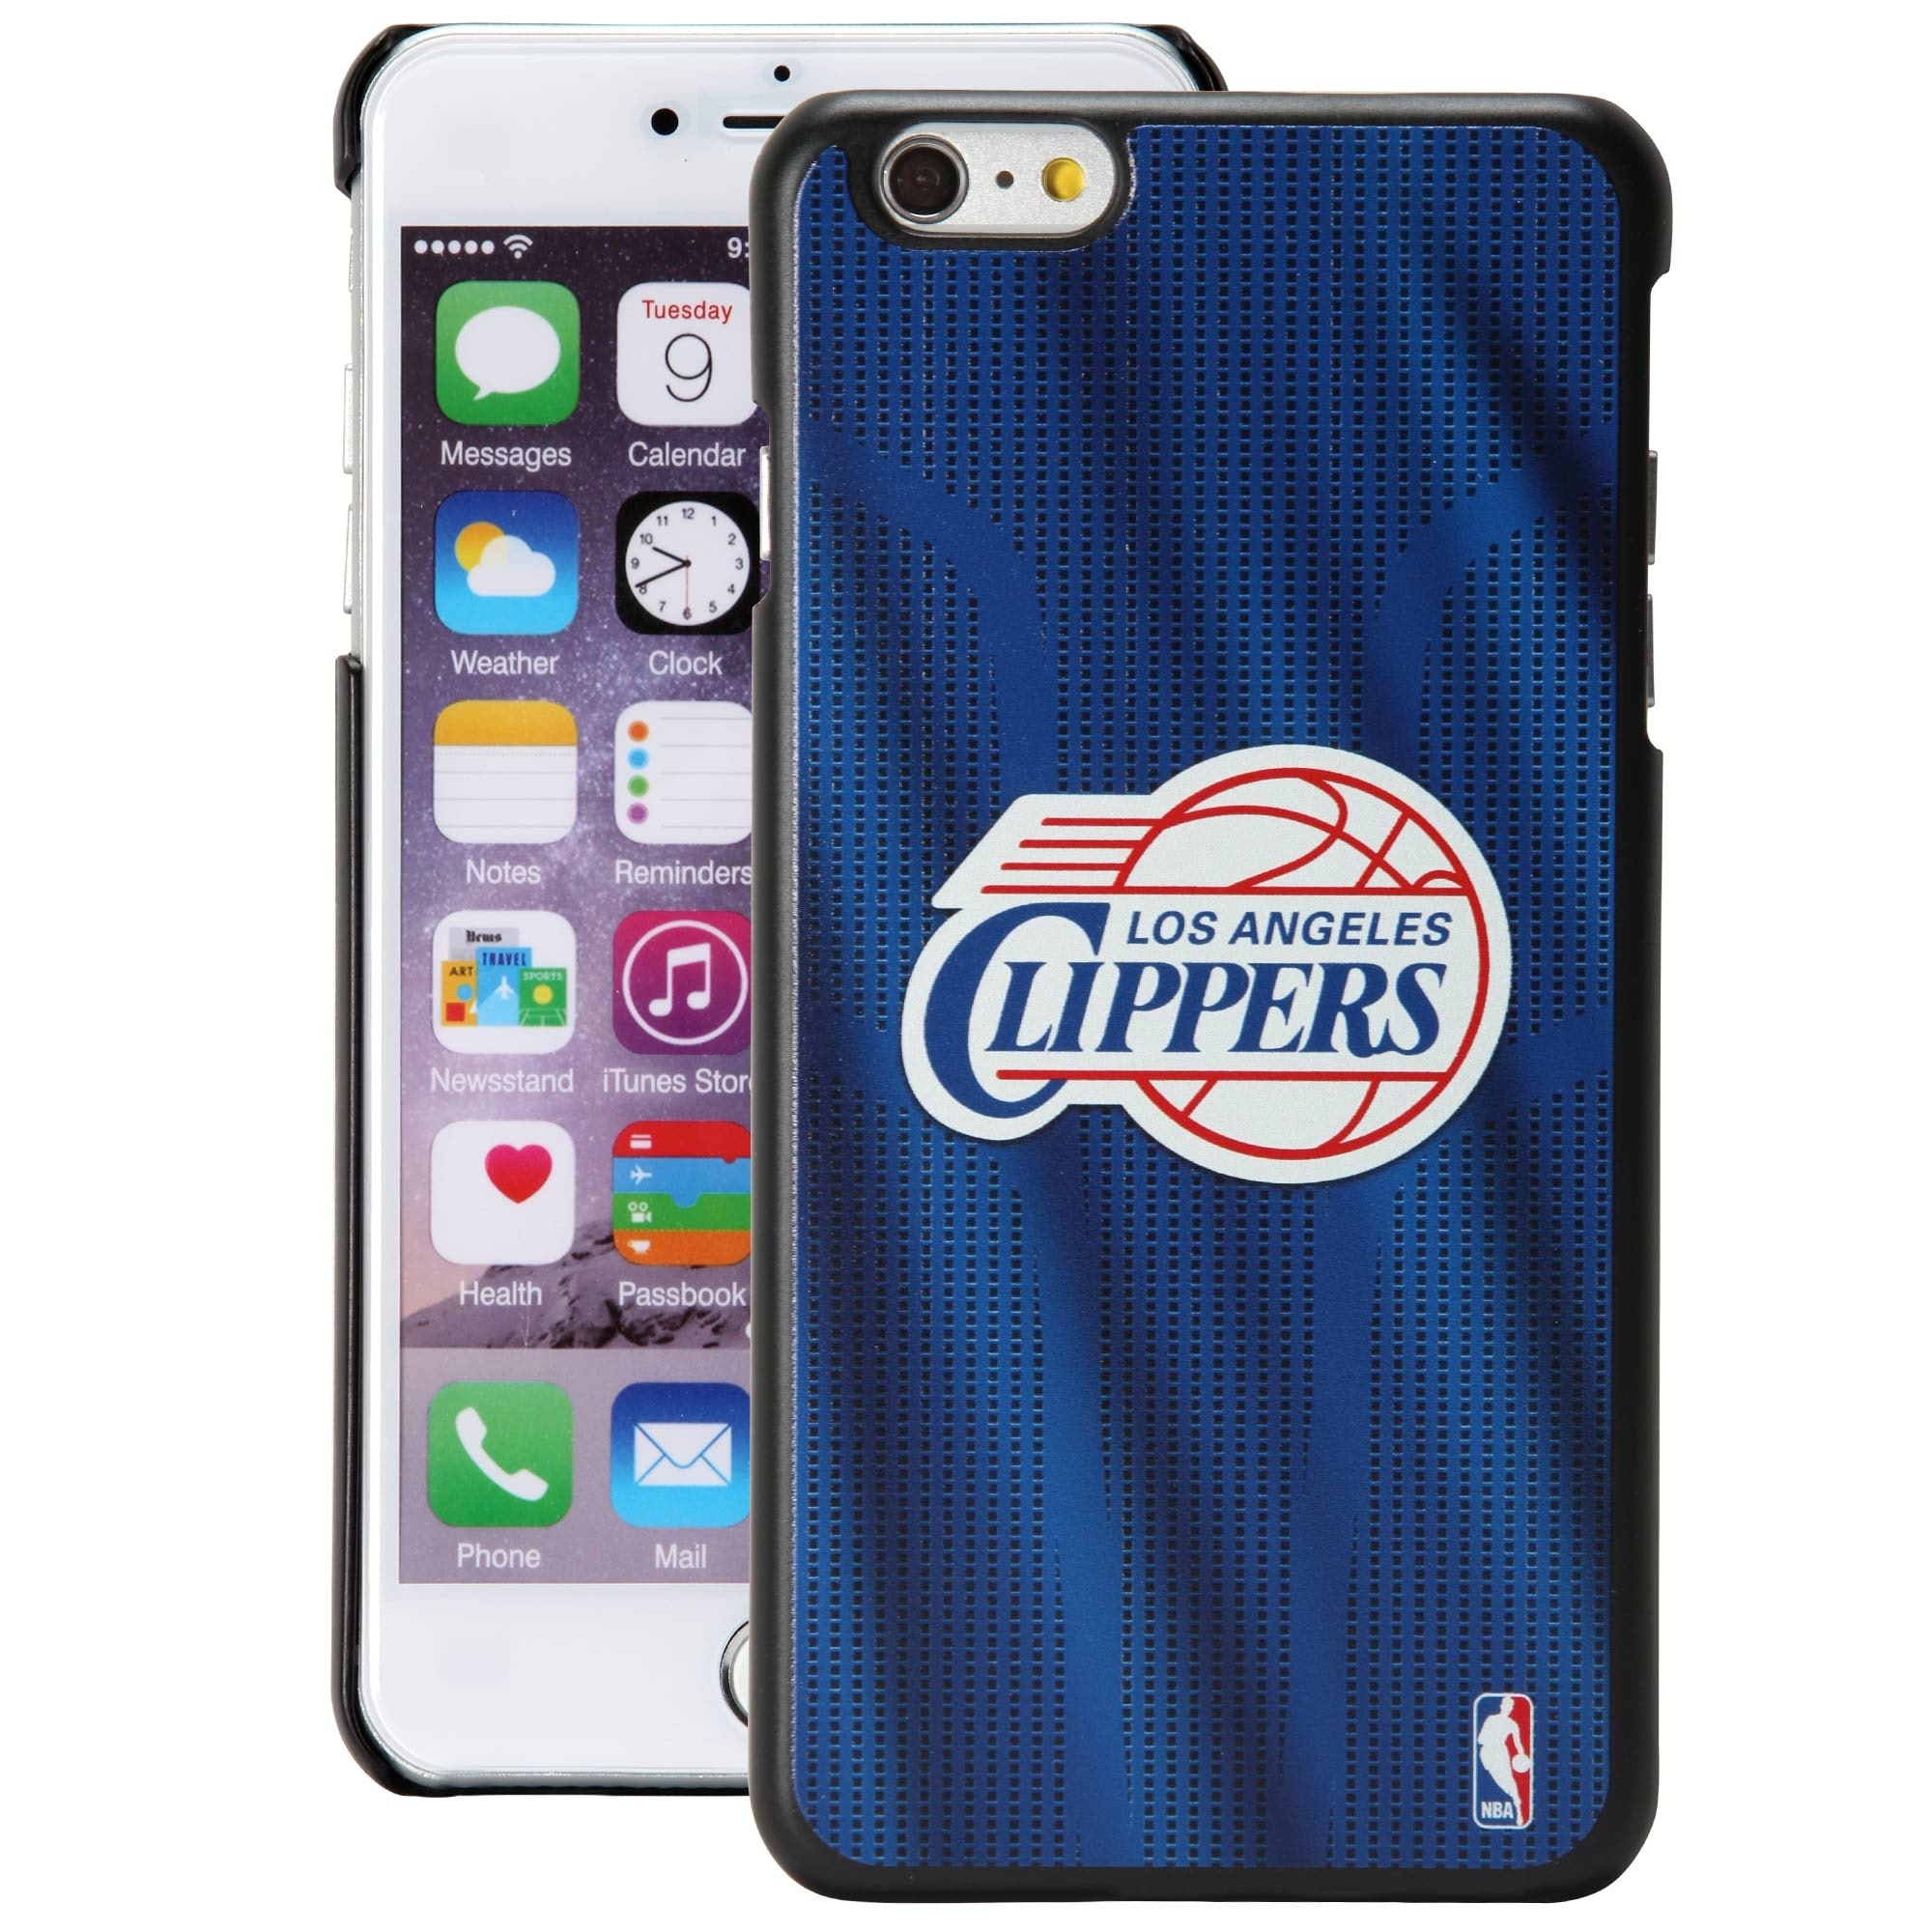 LA Clippers iPhone 6 Plus Jersey Case